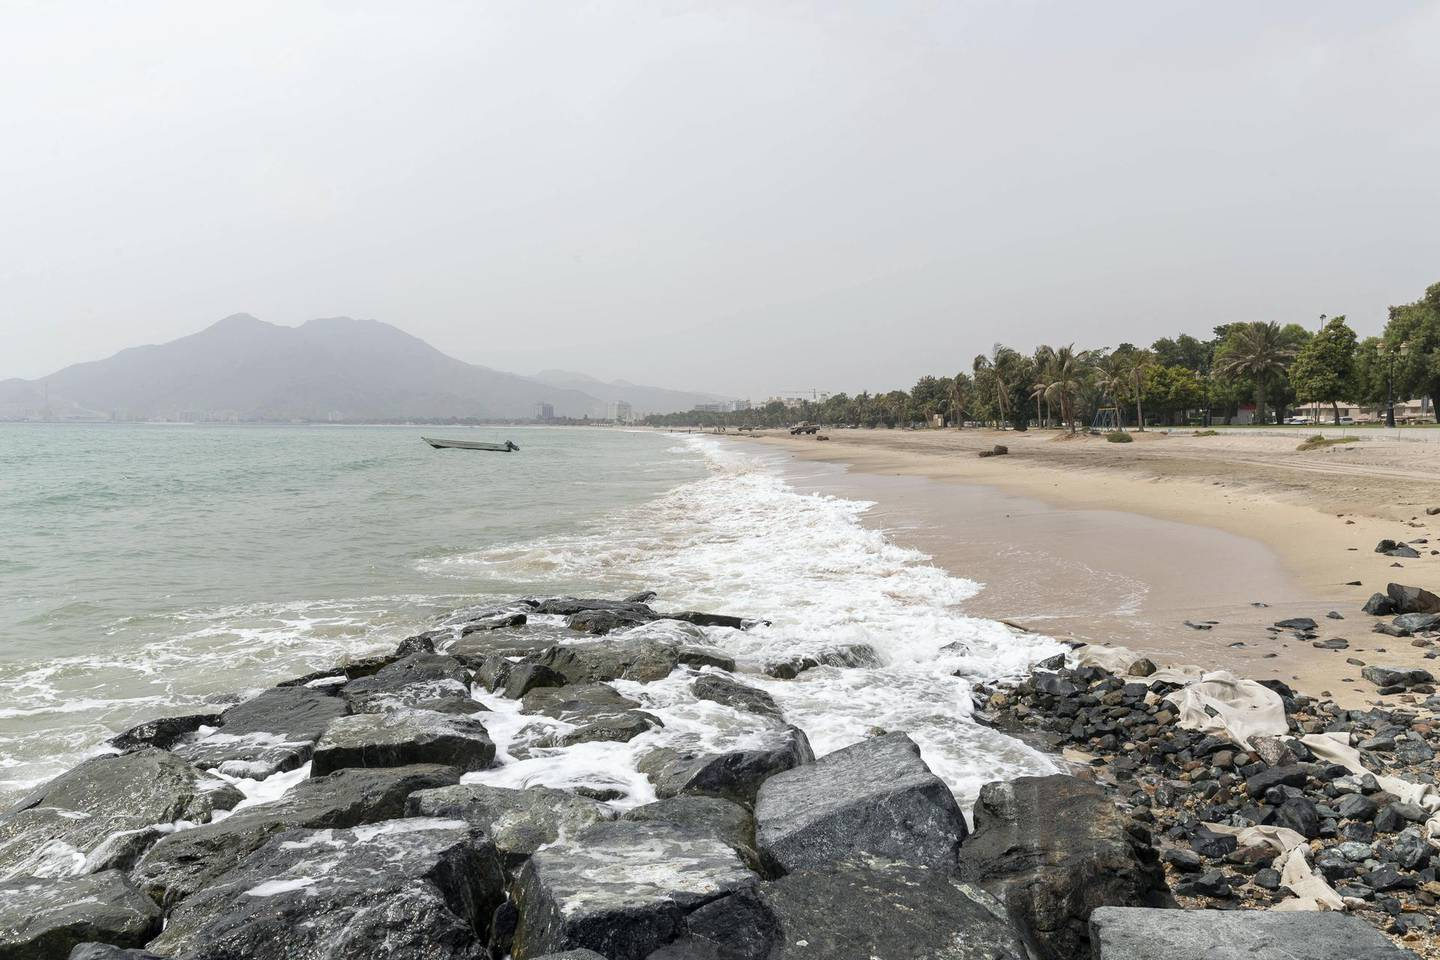 DIBBA, UNITED ARAB EMIRATES. 09 AUGUST 2018. Khor Fakkan beach on the east coast of the UAE. (Photo: Antonie Robertson/The National) Journalist: Kevin Hacket. Section: National.